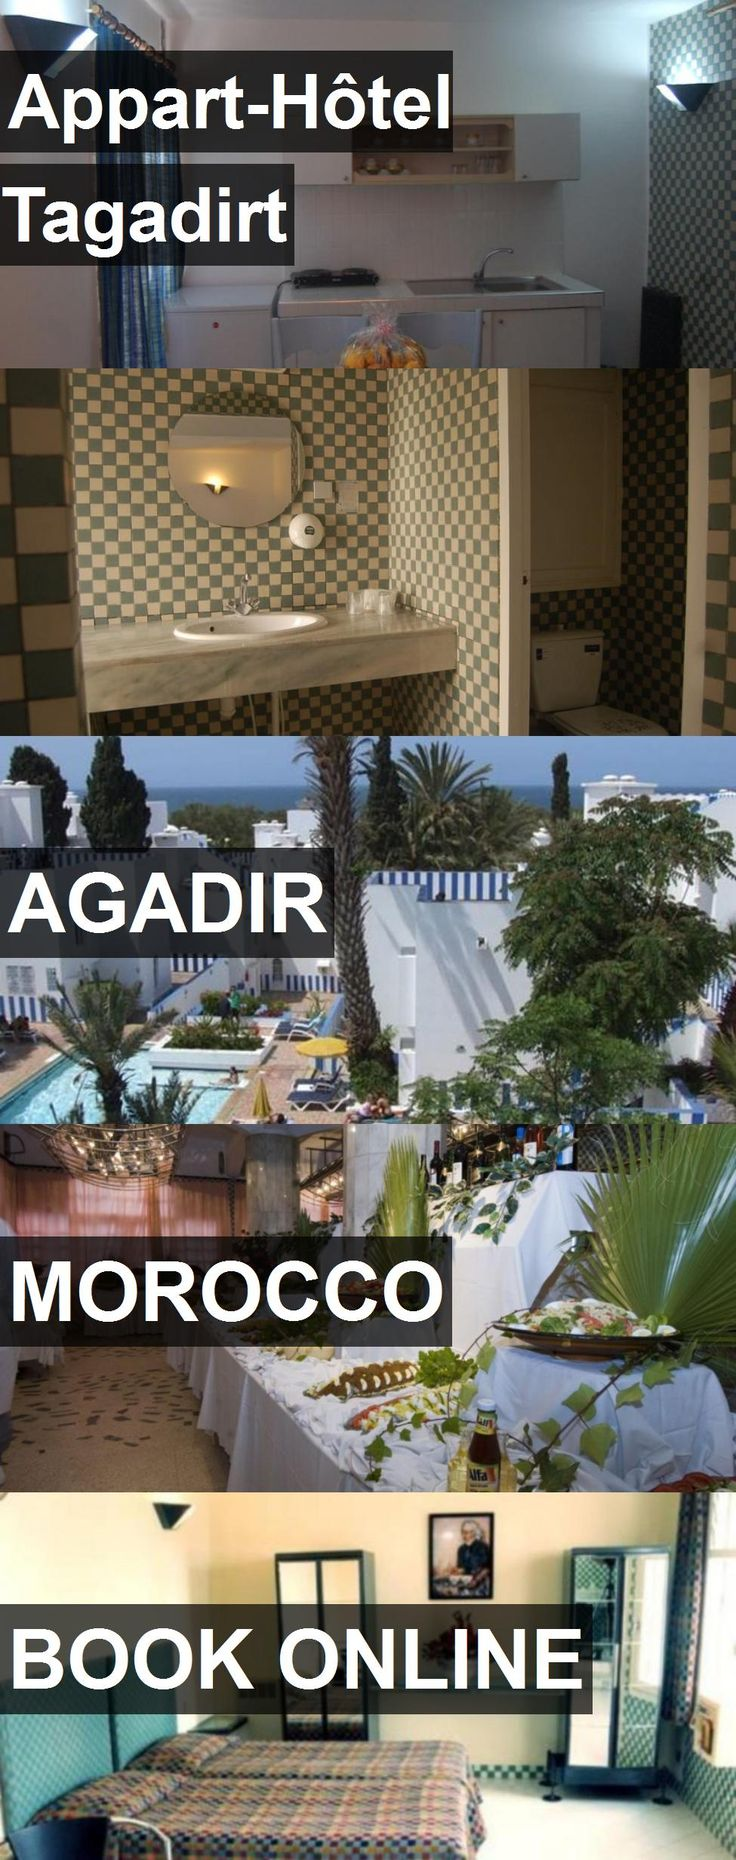 Hotel Appart-Hôtel Tagadirt in Agadir, Morocco. For more information, photos, reviews and best prices please follow the link. #Morocco #Agadir #travel #vacation #hotel